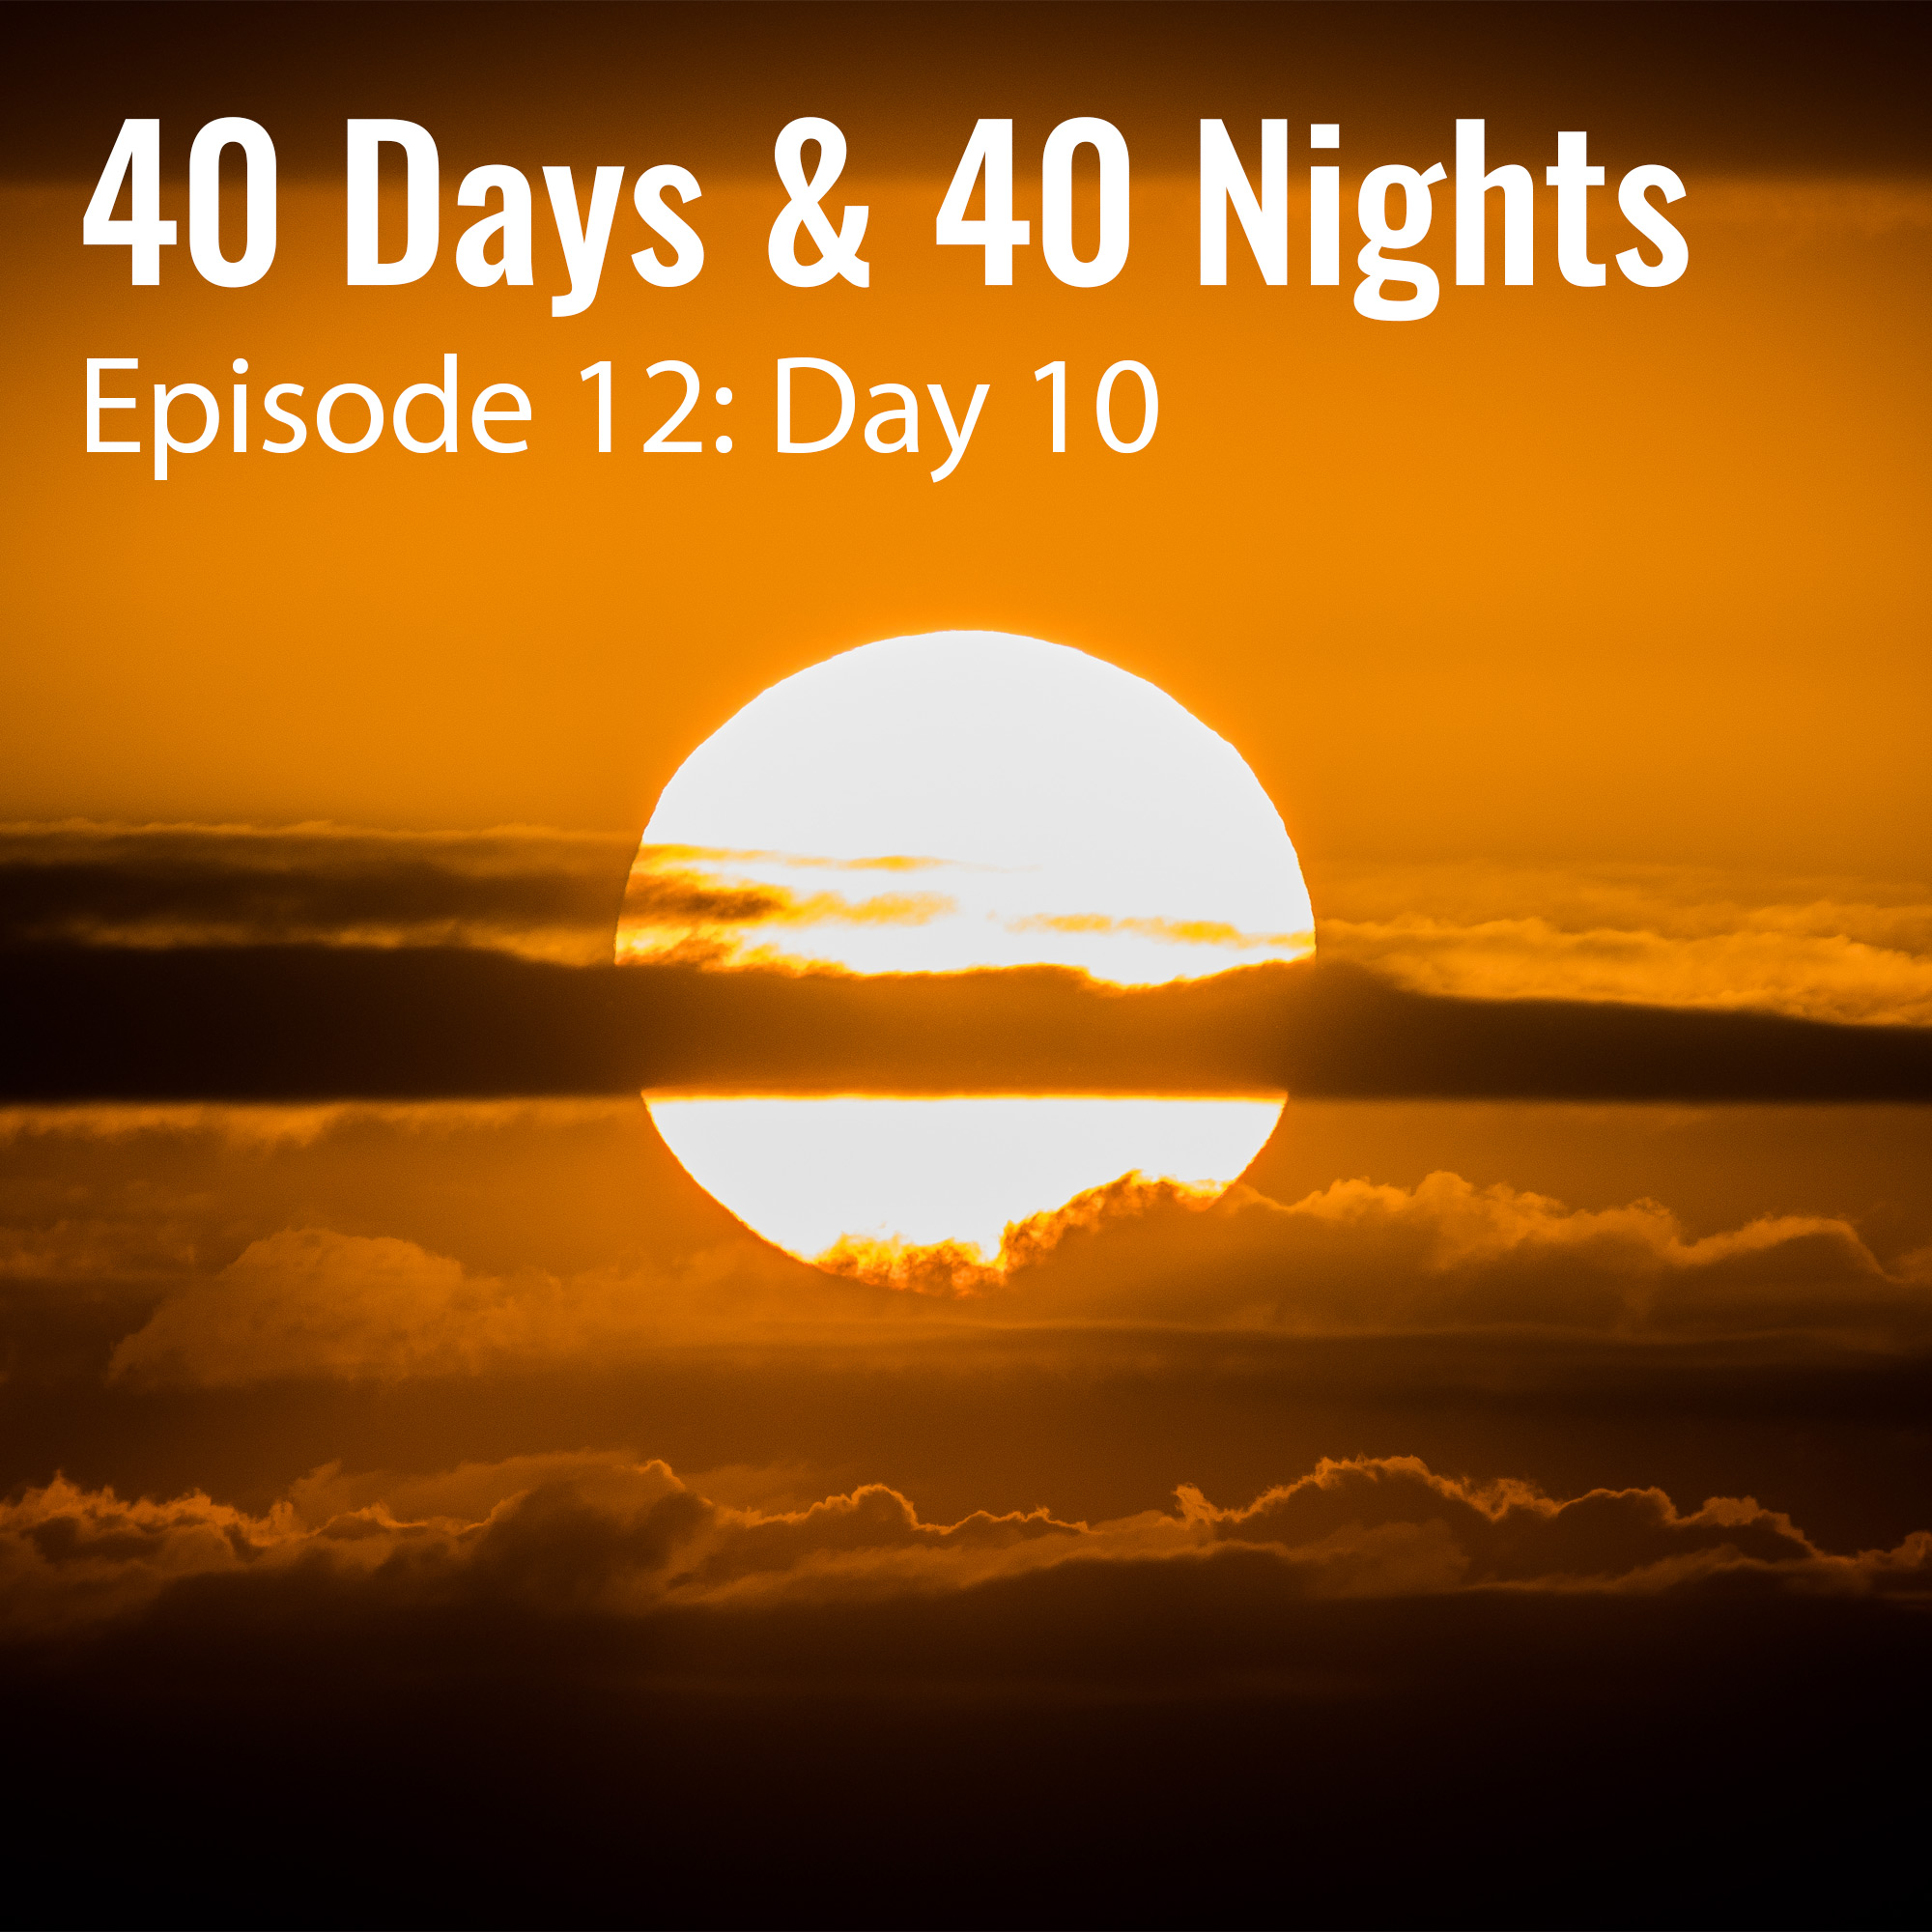 Day-10-40 days and 40 nights